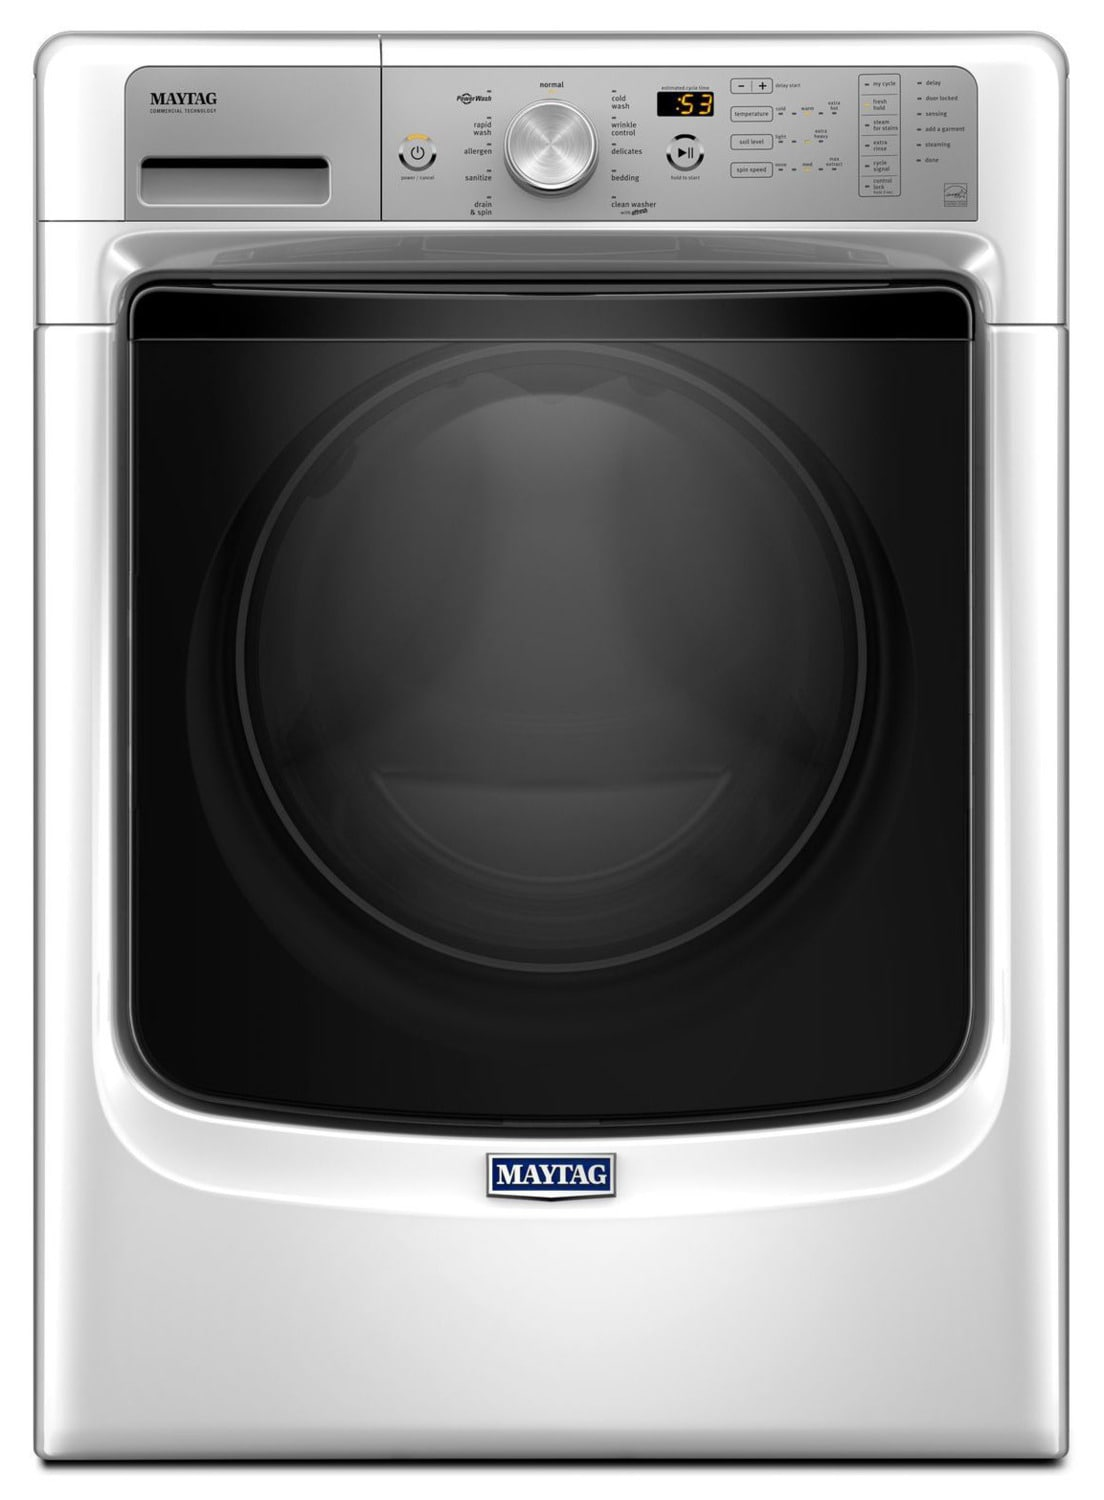 Maytag White Front-Load Washer (5.2 Cu. Ft. IEC) - MHW5500FW